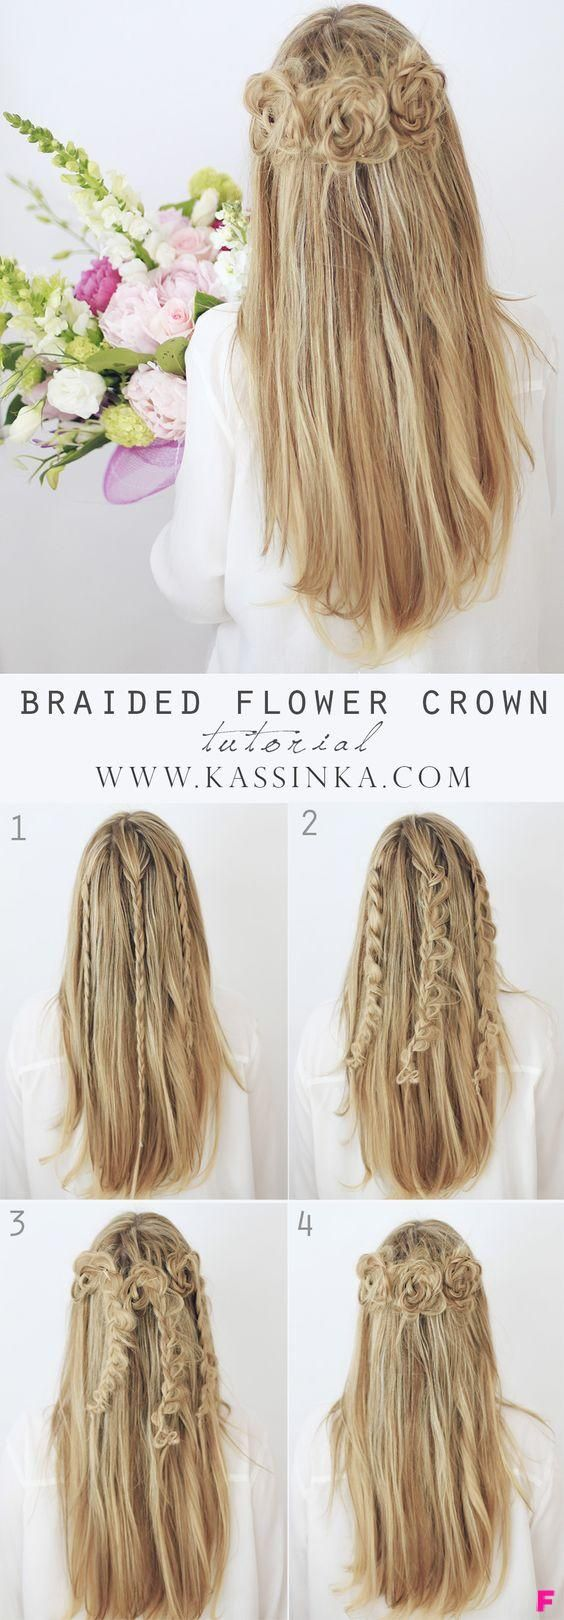 25 Hair Tutorials You Need to Try | Women's Fashionesia